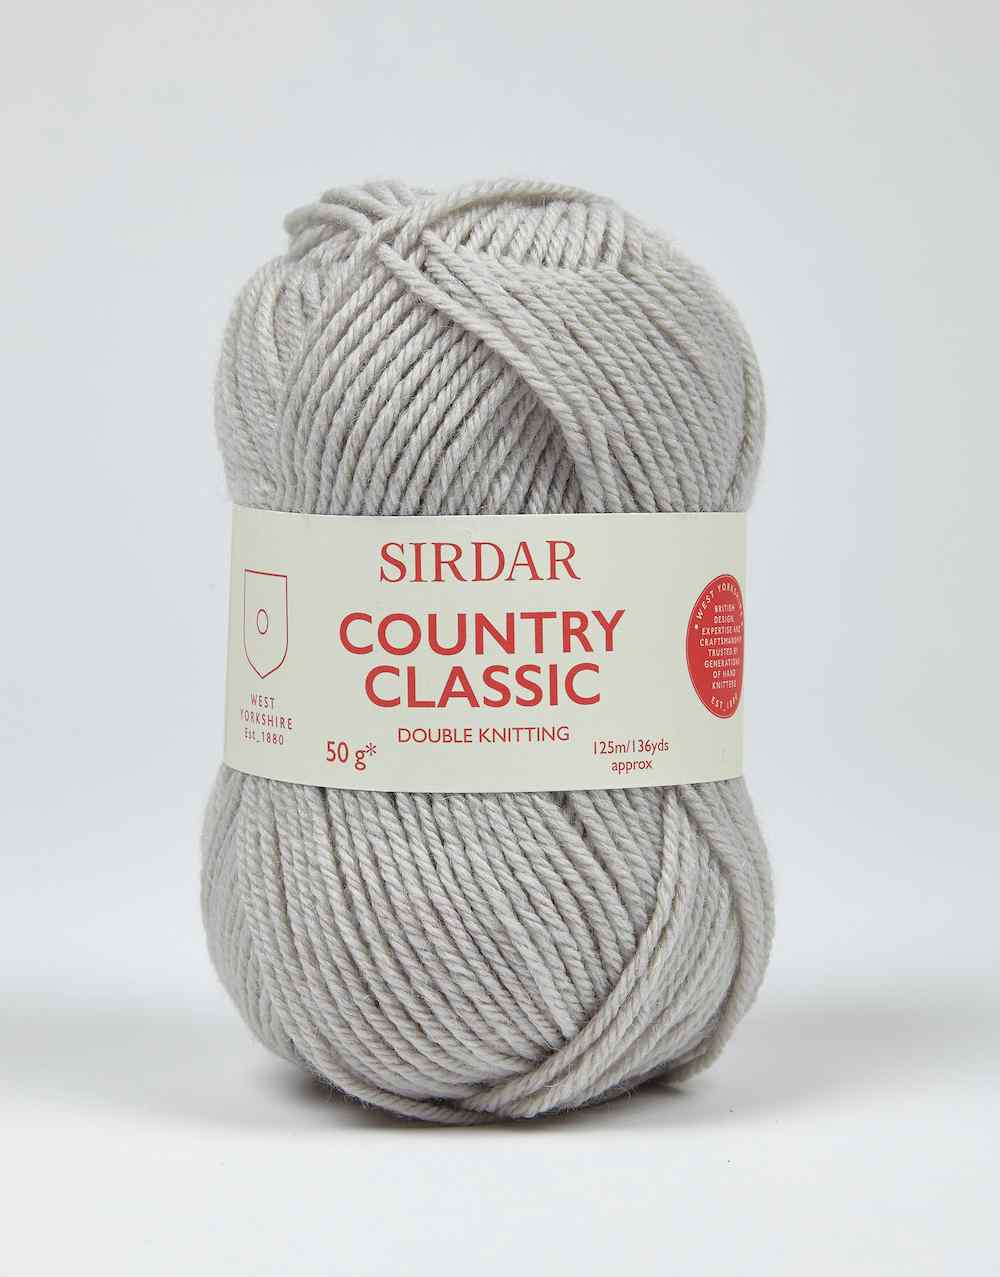 Sirdar Country Classic DK 0862 Dove Grey